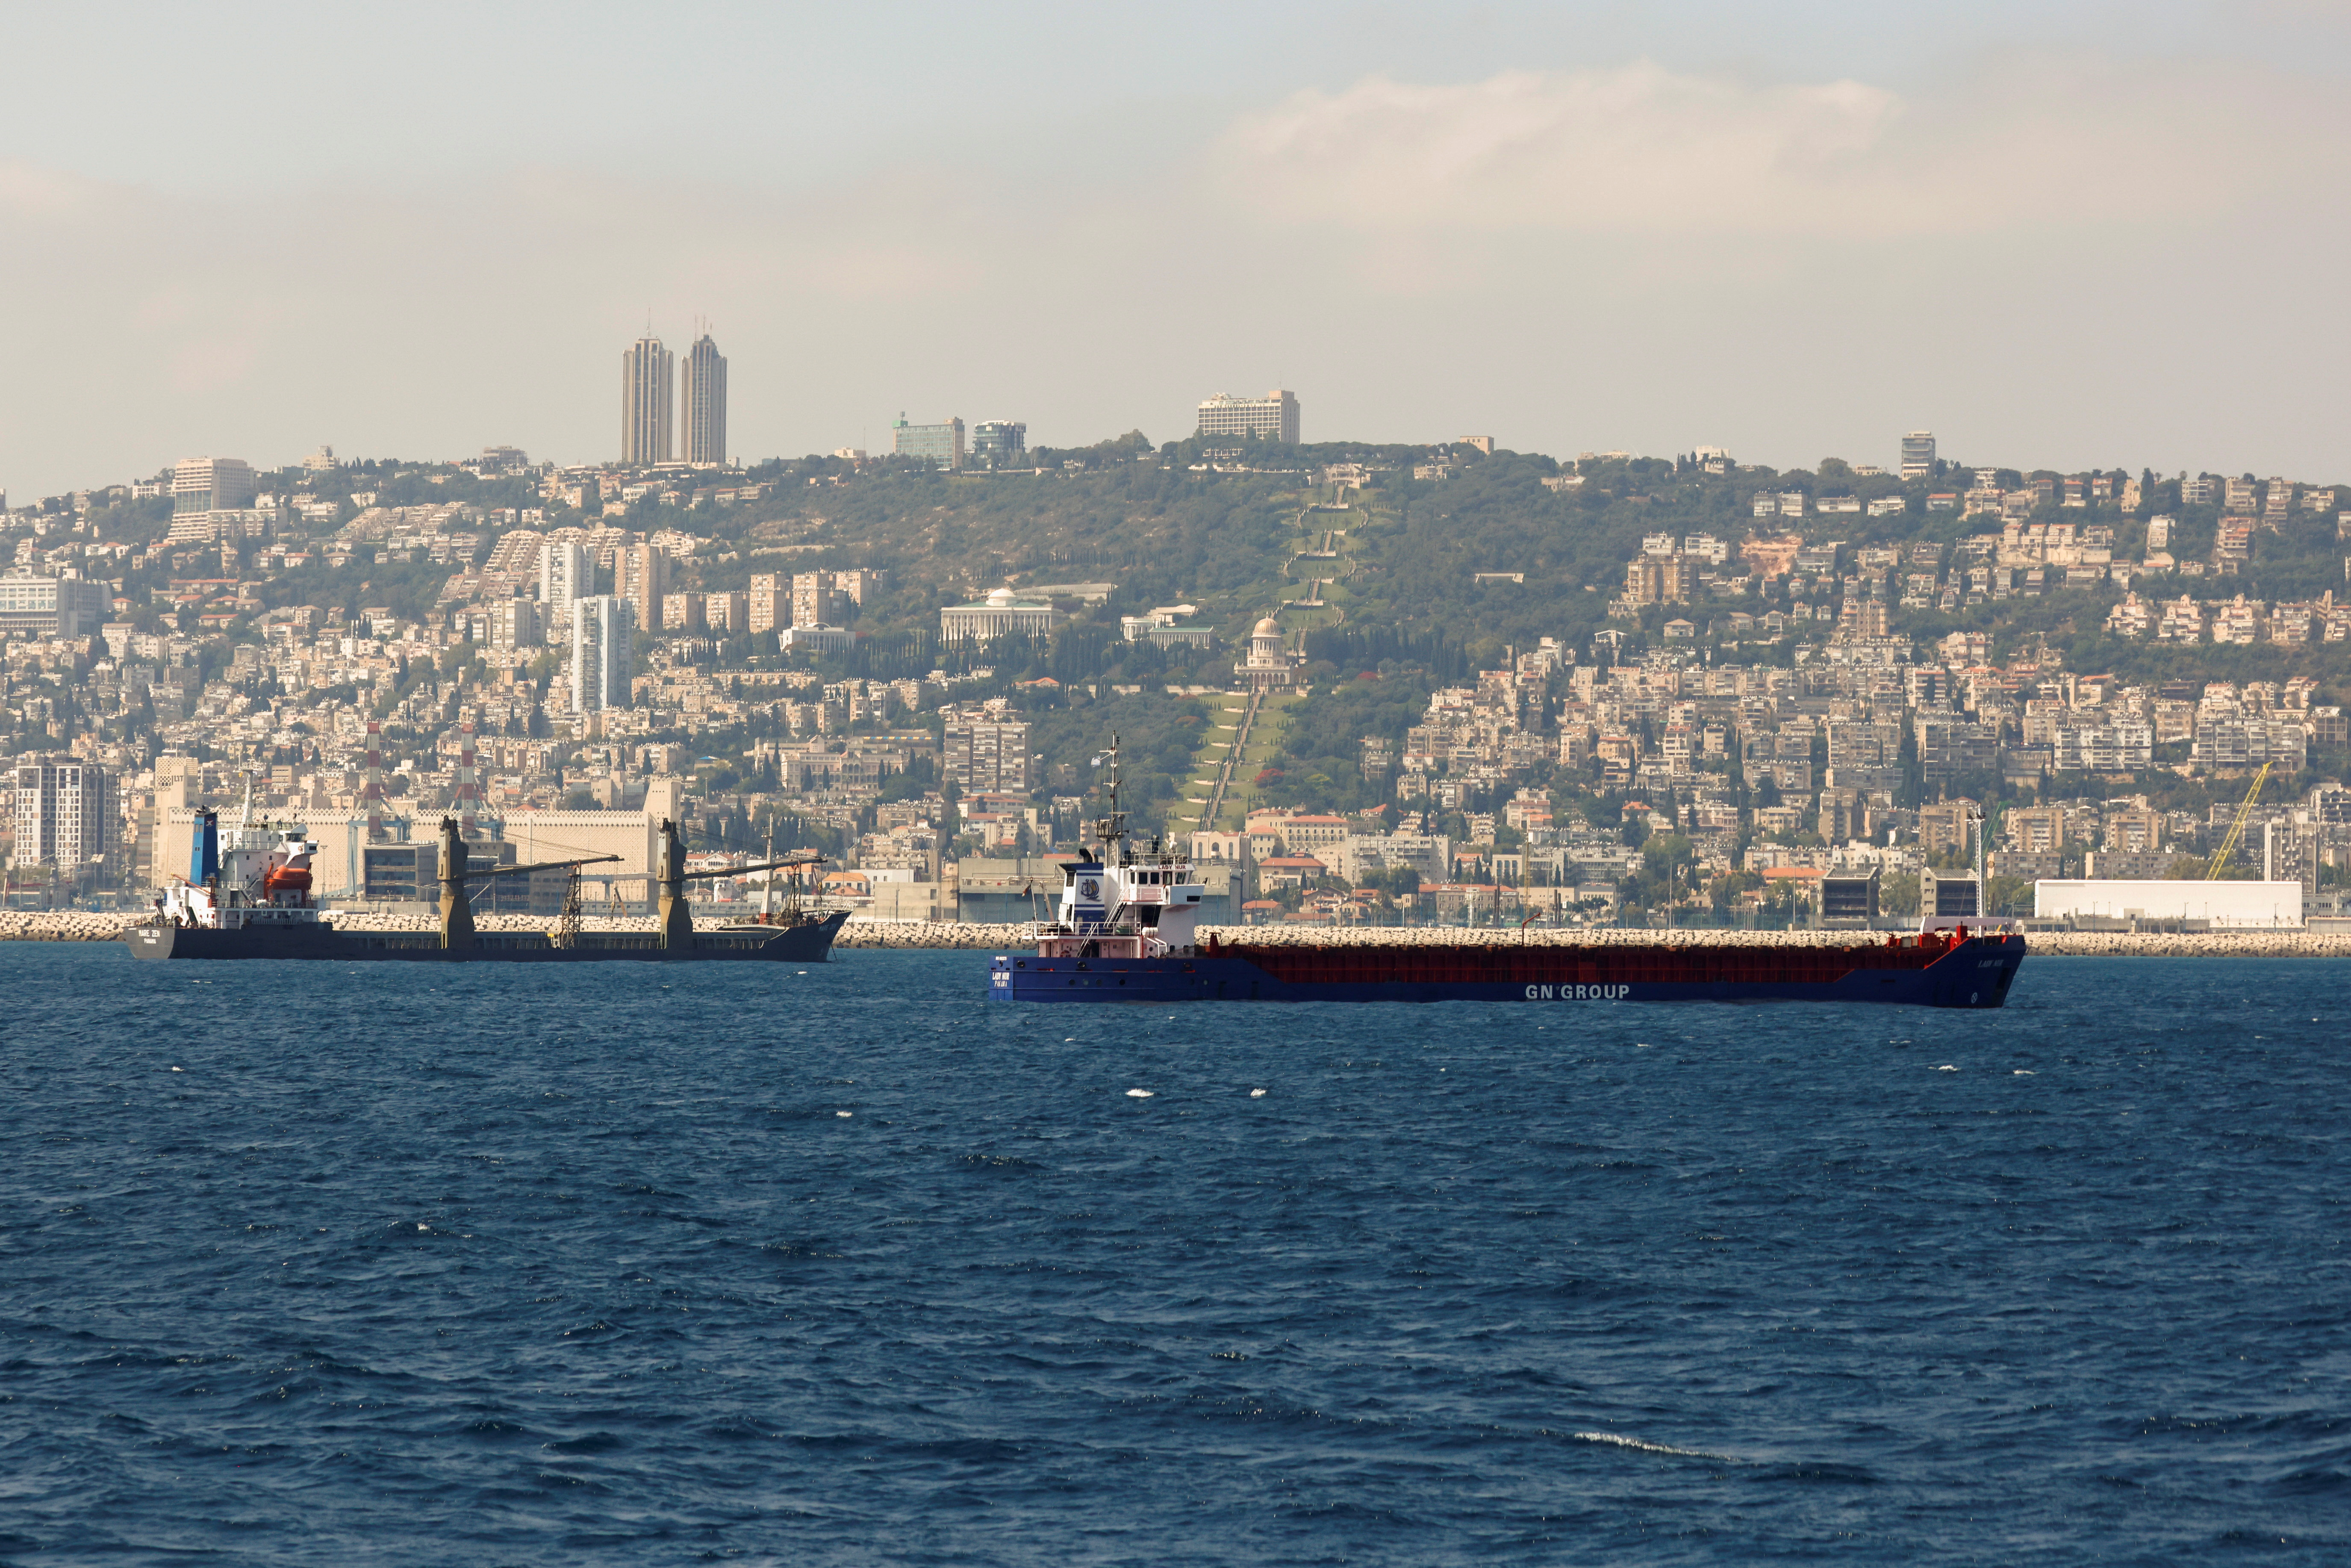 The city of Haifa is seen in the background as ships sail in the Mediterranean Sea, in the Haifa bay area, northern Israel June 9, 2021.